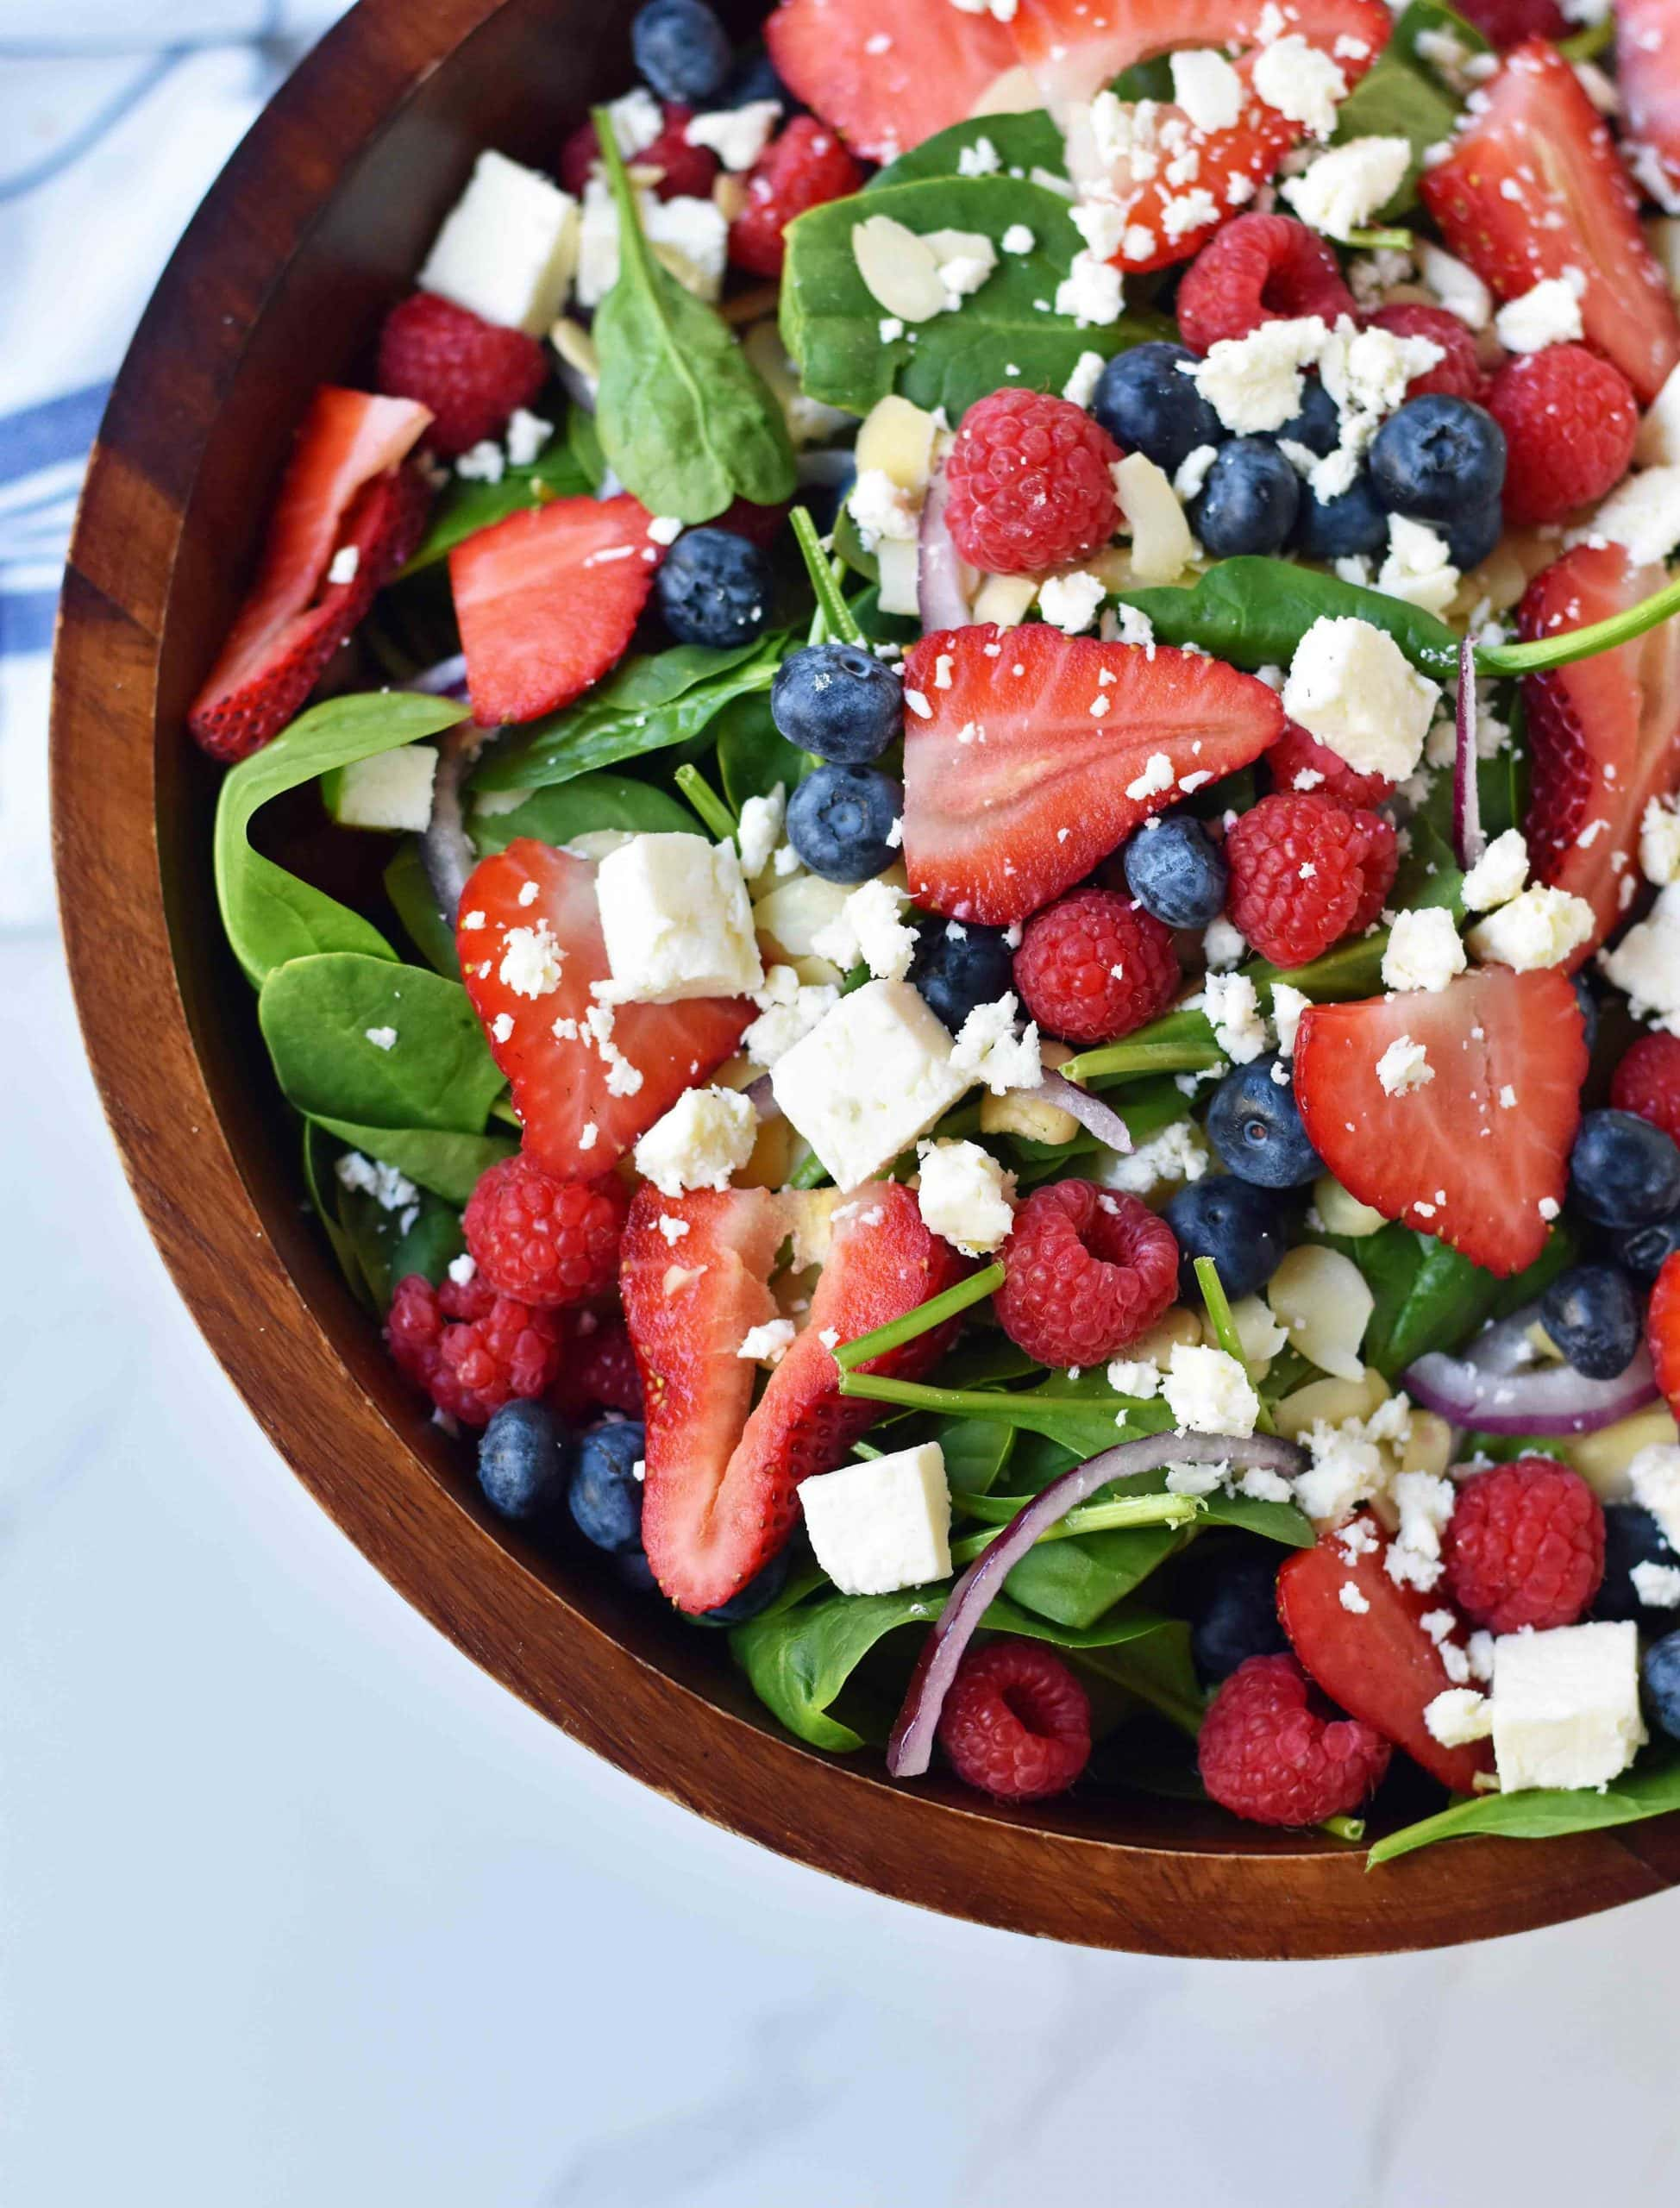 A salad in a wooden bowl full of spinach, fresh berries and feta cheese crumbles.